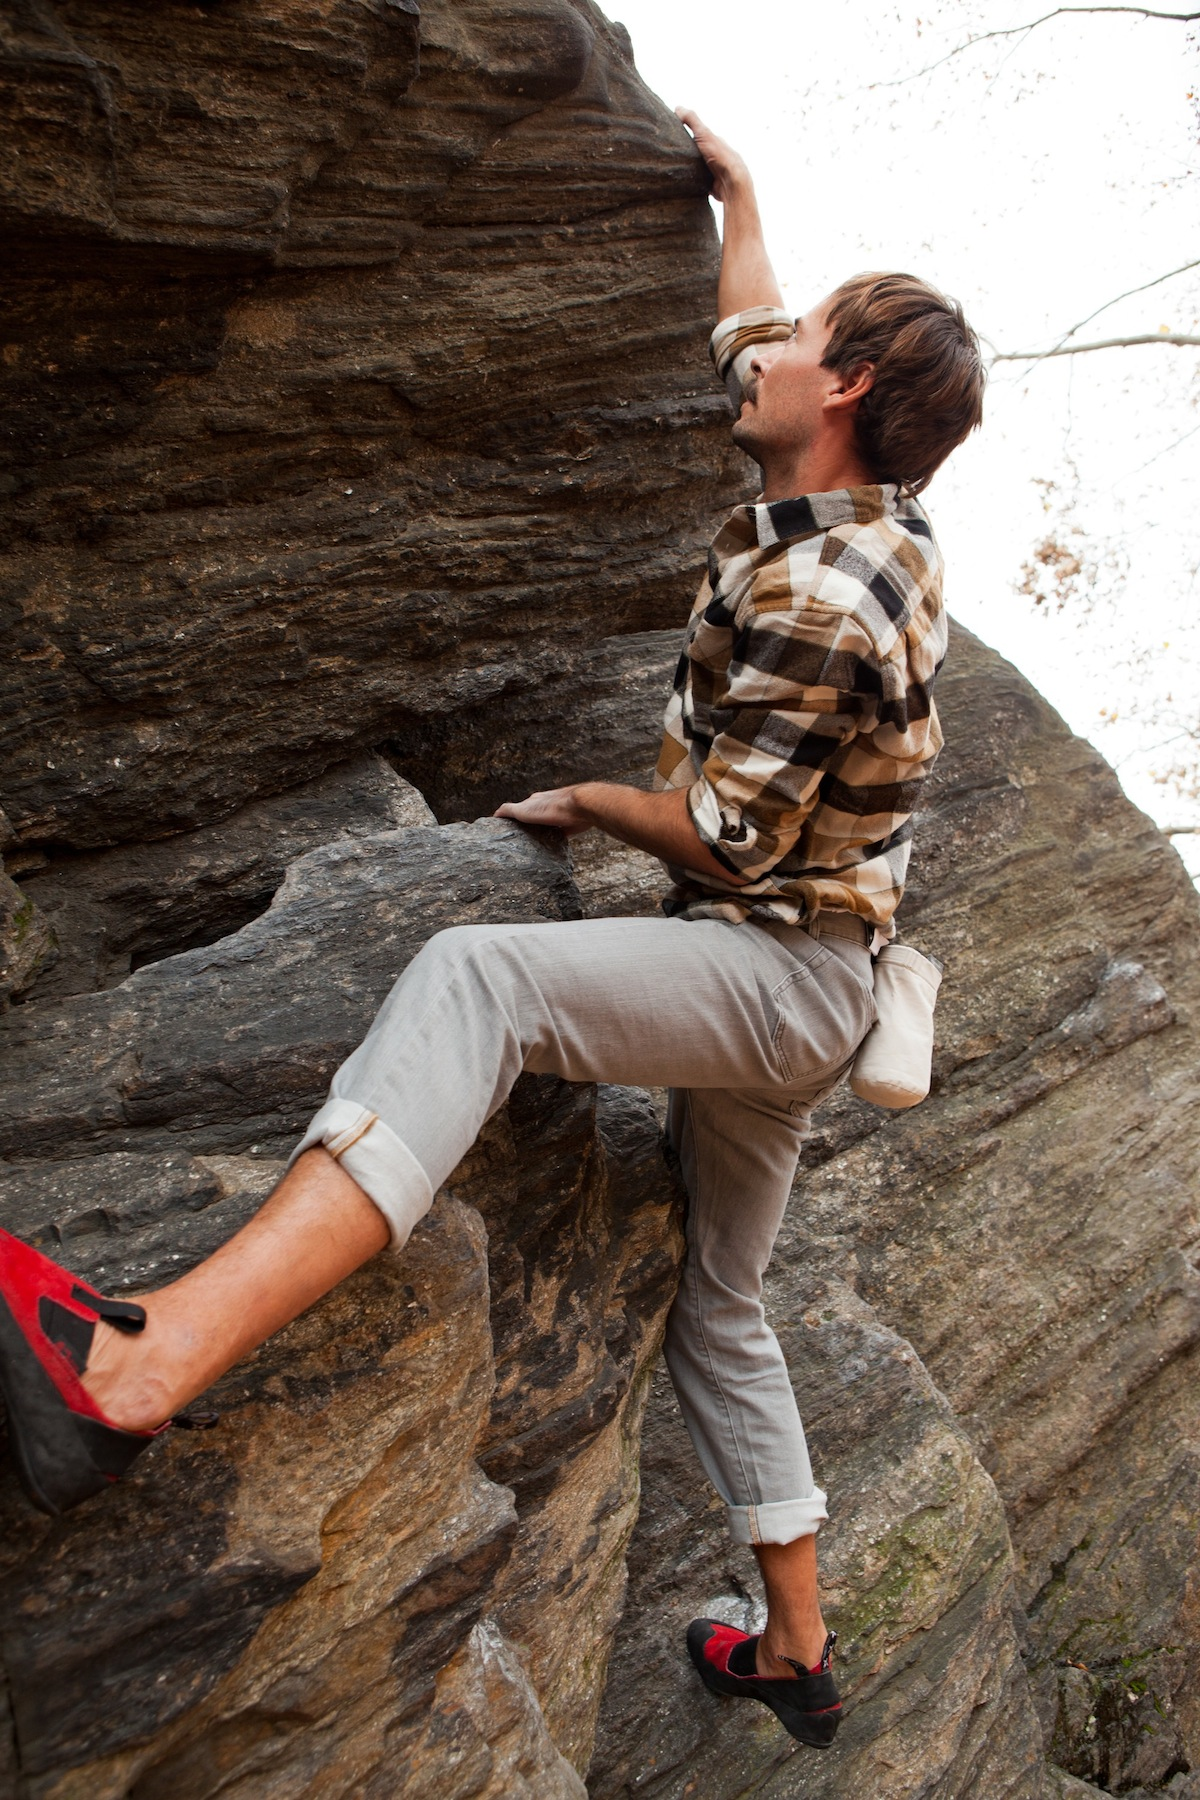 patagonia_surf_collective_bouldering_central_park_6